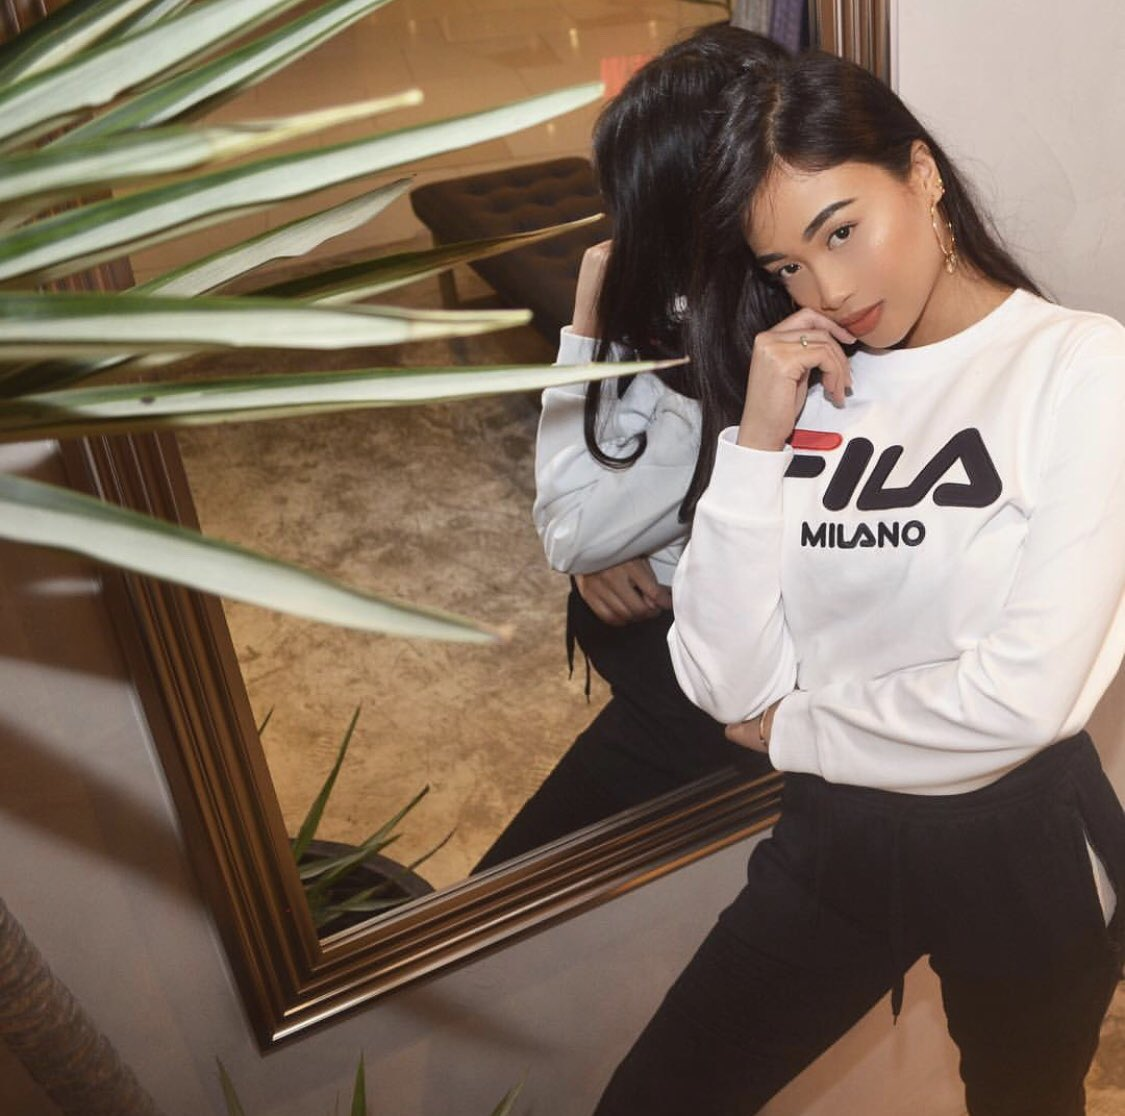 Hey guys, check out our FILA Milano Collection at FILA ...